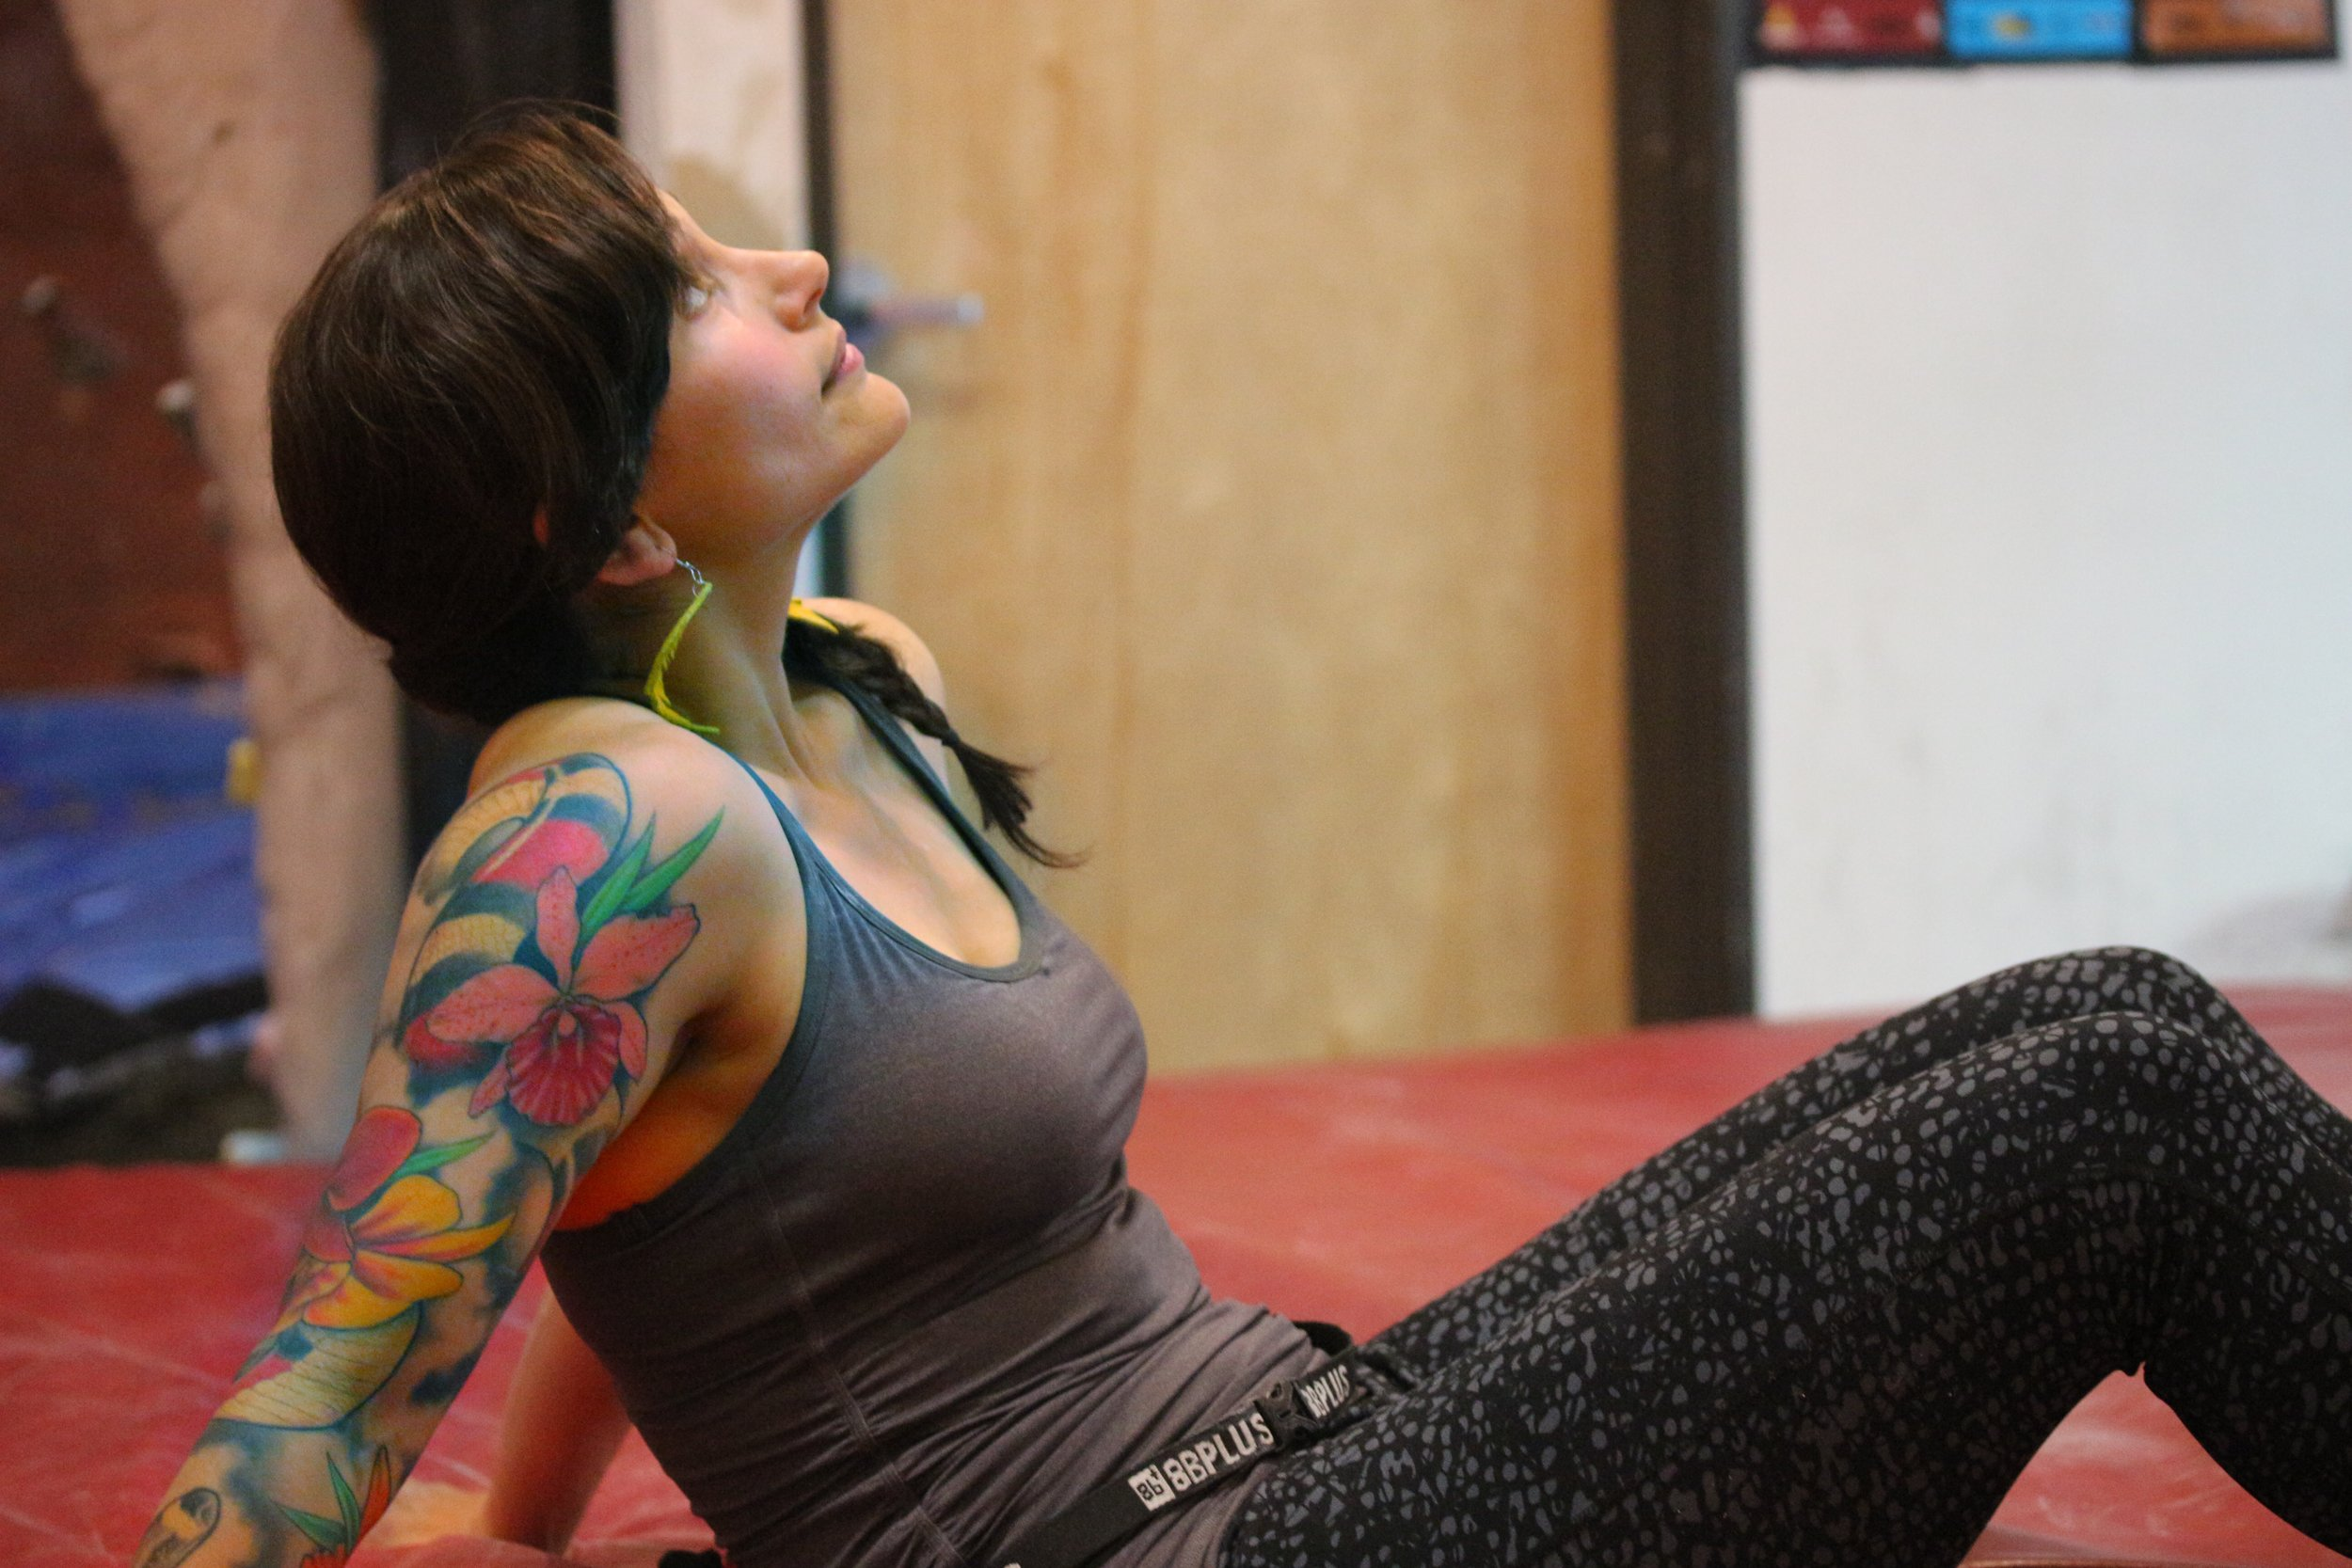 Missy from Team SW/AG, taking a break in the highball bouldering room.